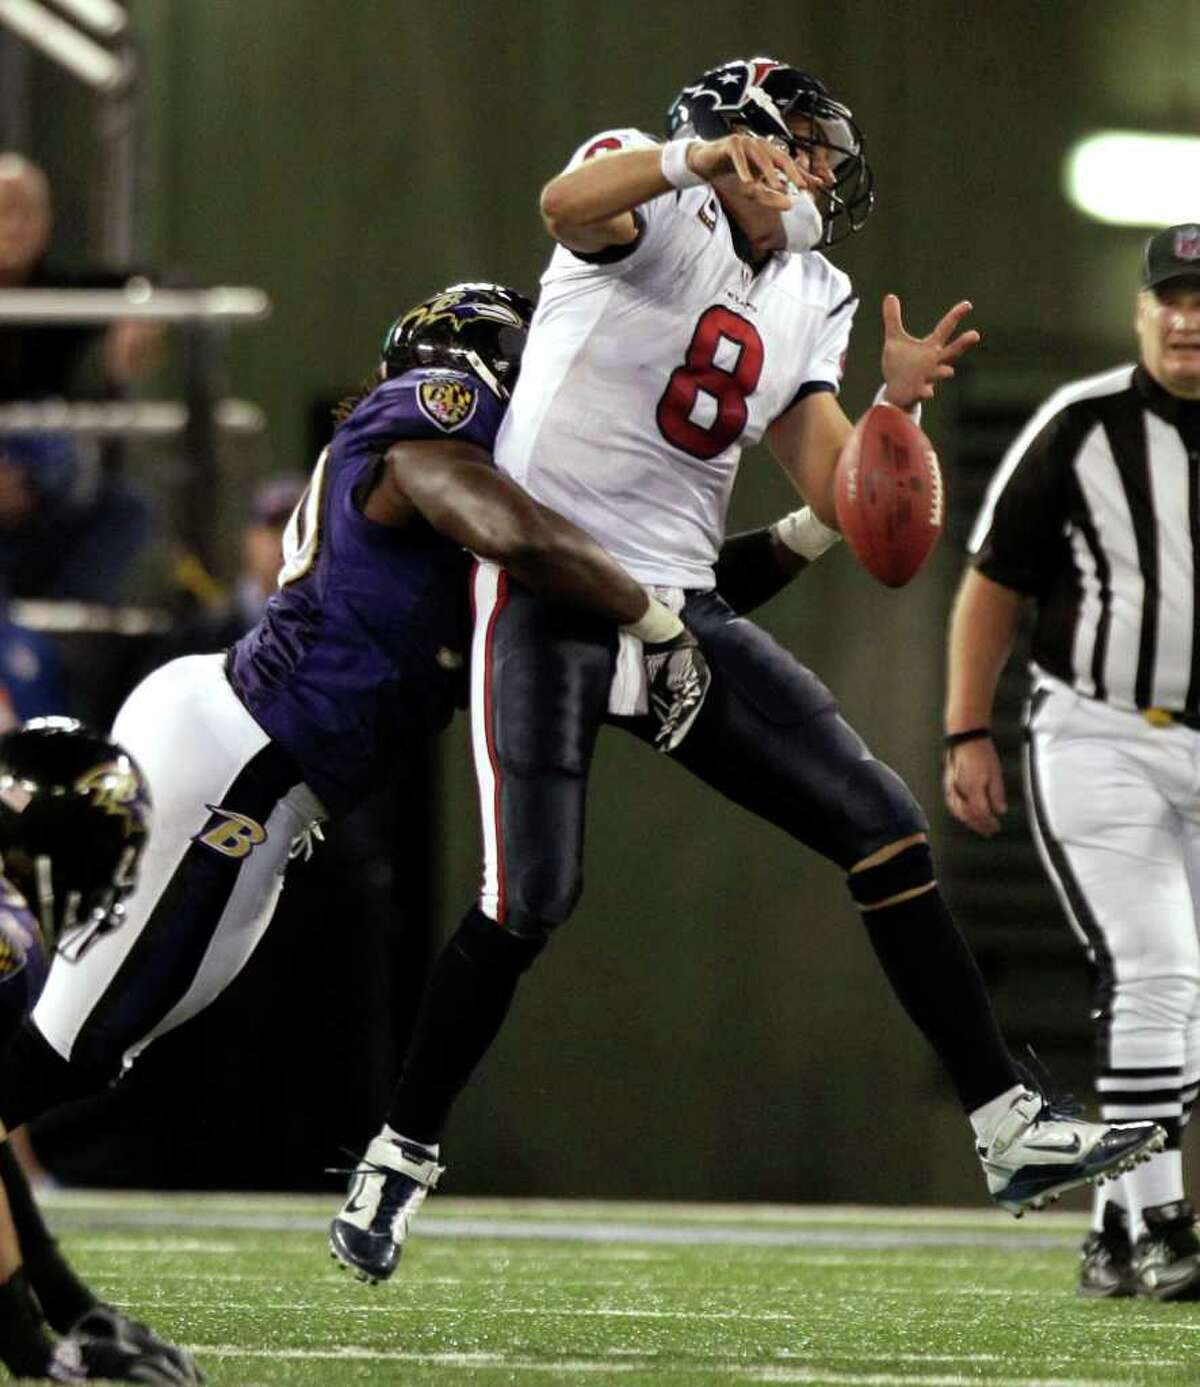 Houston Texans quarterback Matt Schaub (8) fumbles as he is hit by Baltimore Ravens defensive end Pernell McPhee (90) during the fourth quarter of an NFL football game at M&T Bank Stadium Sunday, Oct. 16, 2011, in Baltimore.